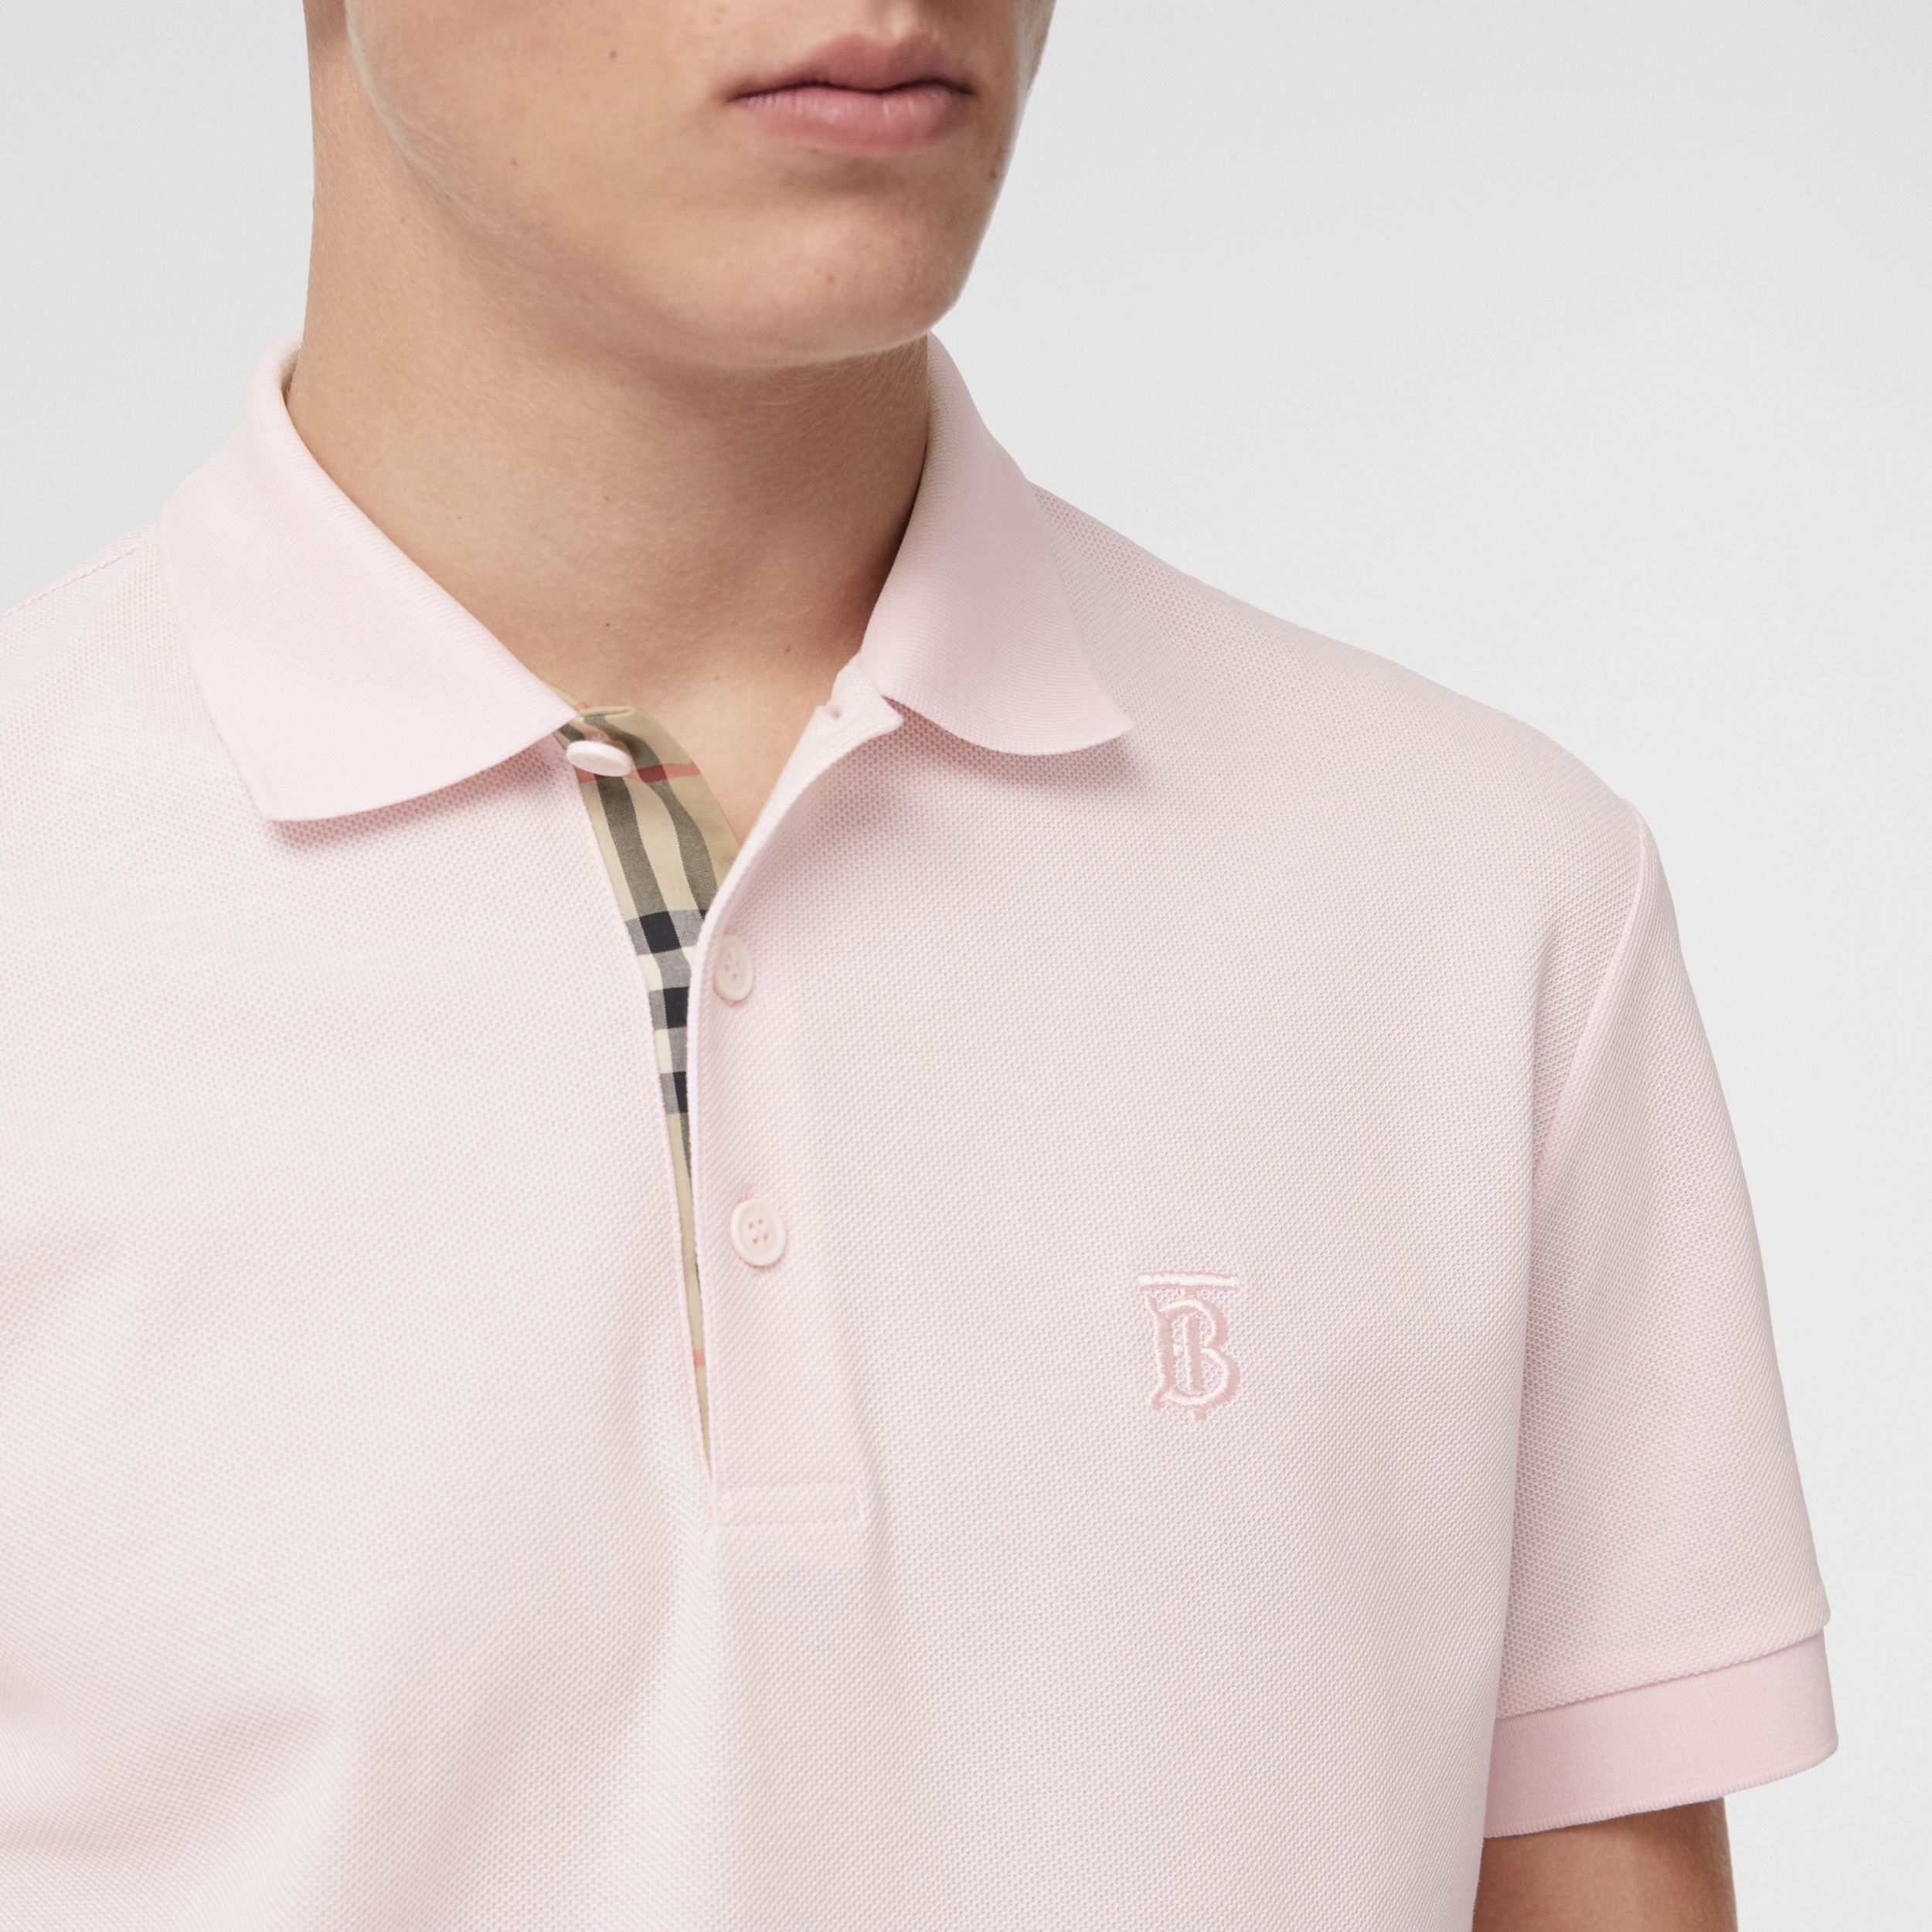 Monogram Motif Cotton Piqué Polo Shirt in Alabaster Pink - Men | Burberry - 2